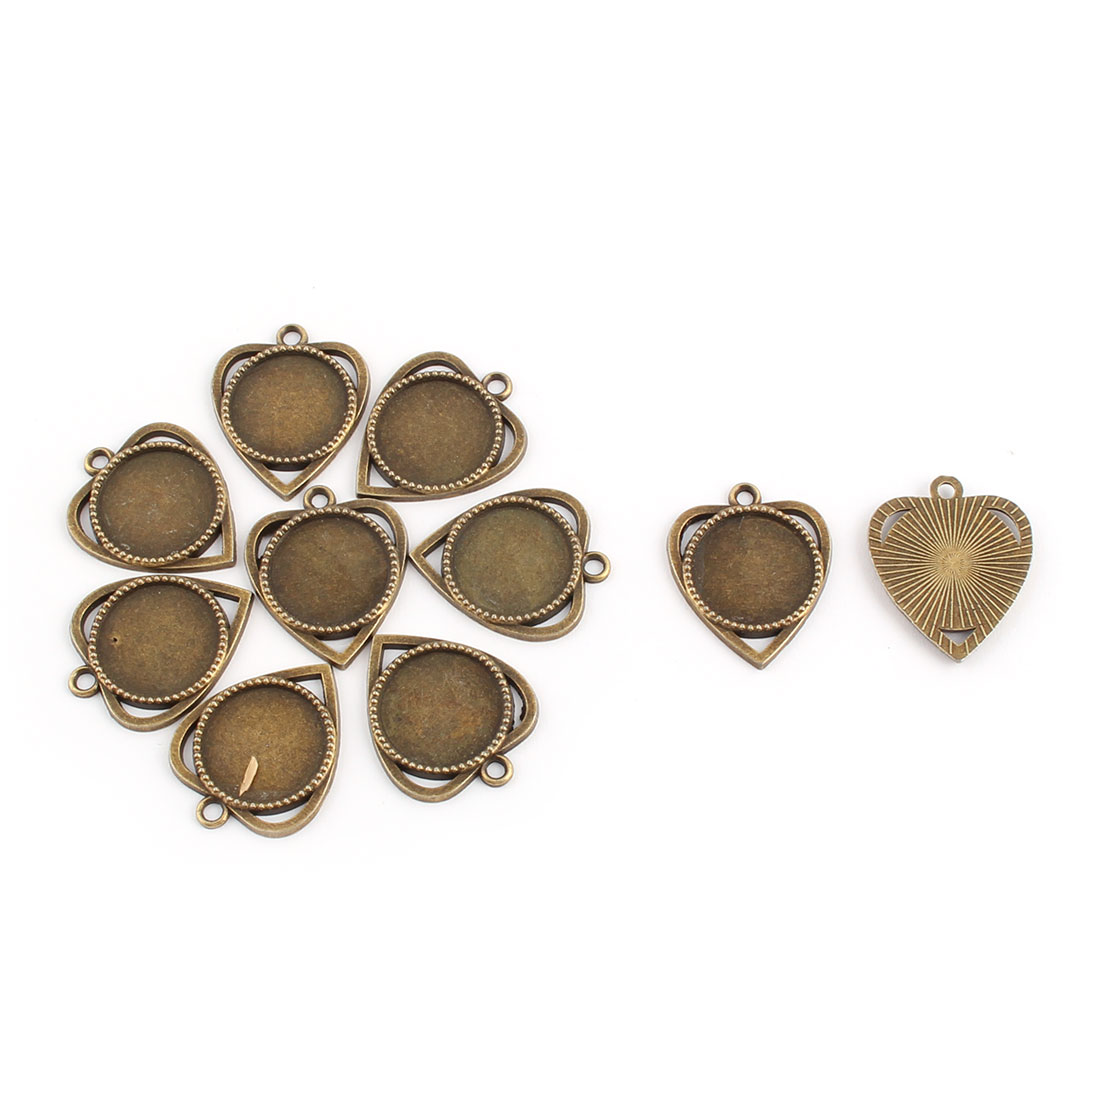 Jewelry DIY Copper Alloy Heart Design Retro Style Pendant Trays 18mm Dia 10pcs